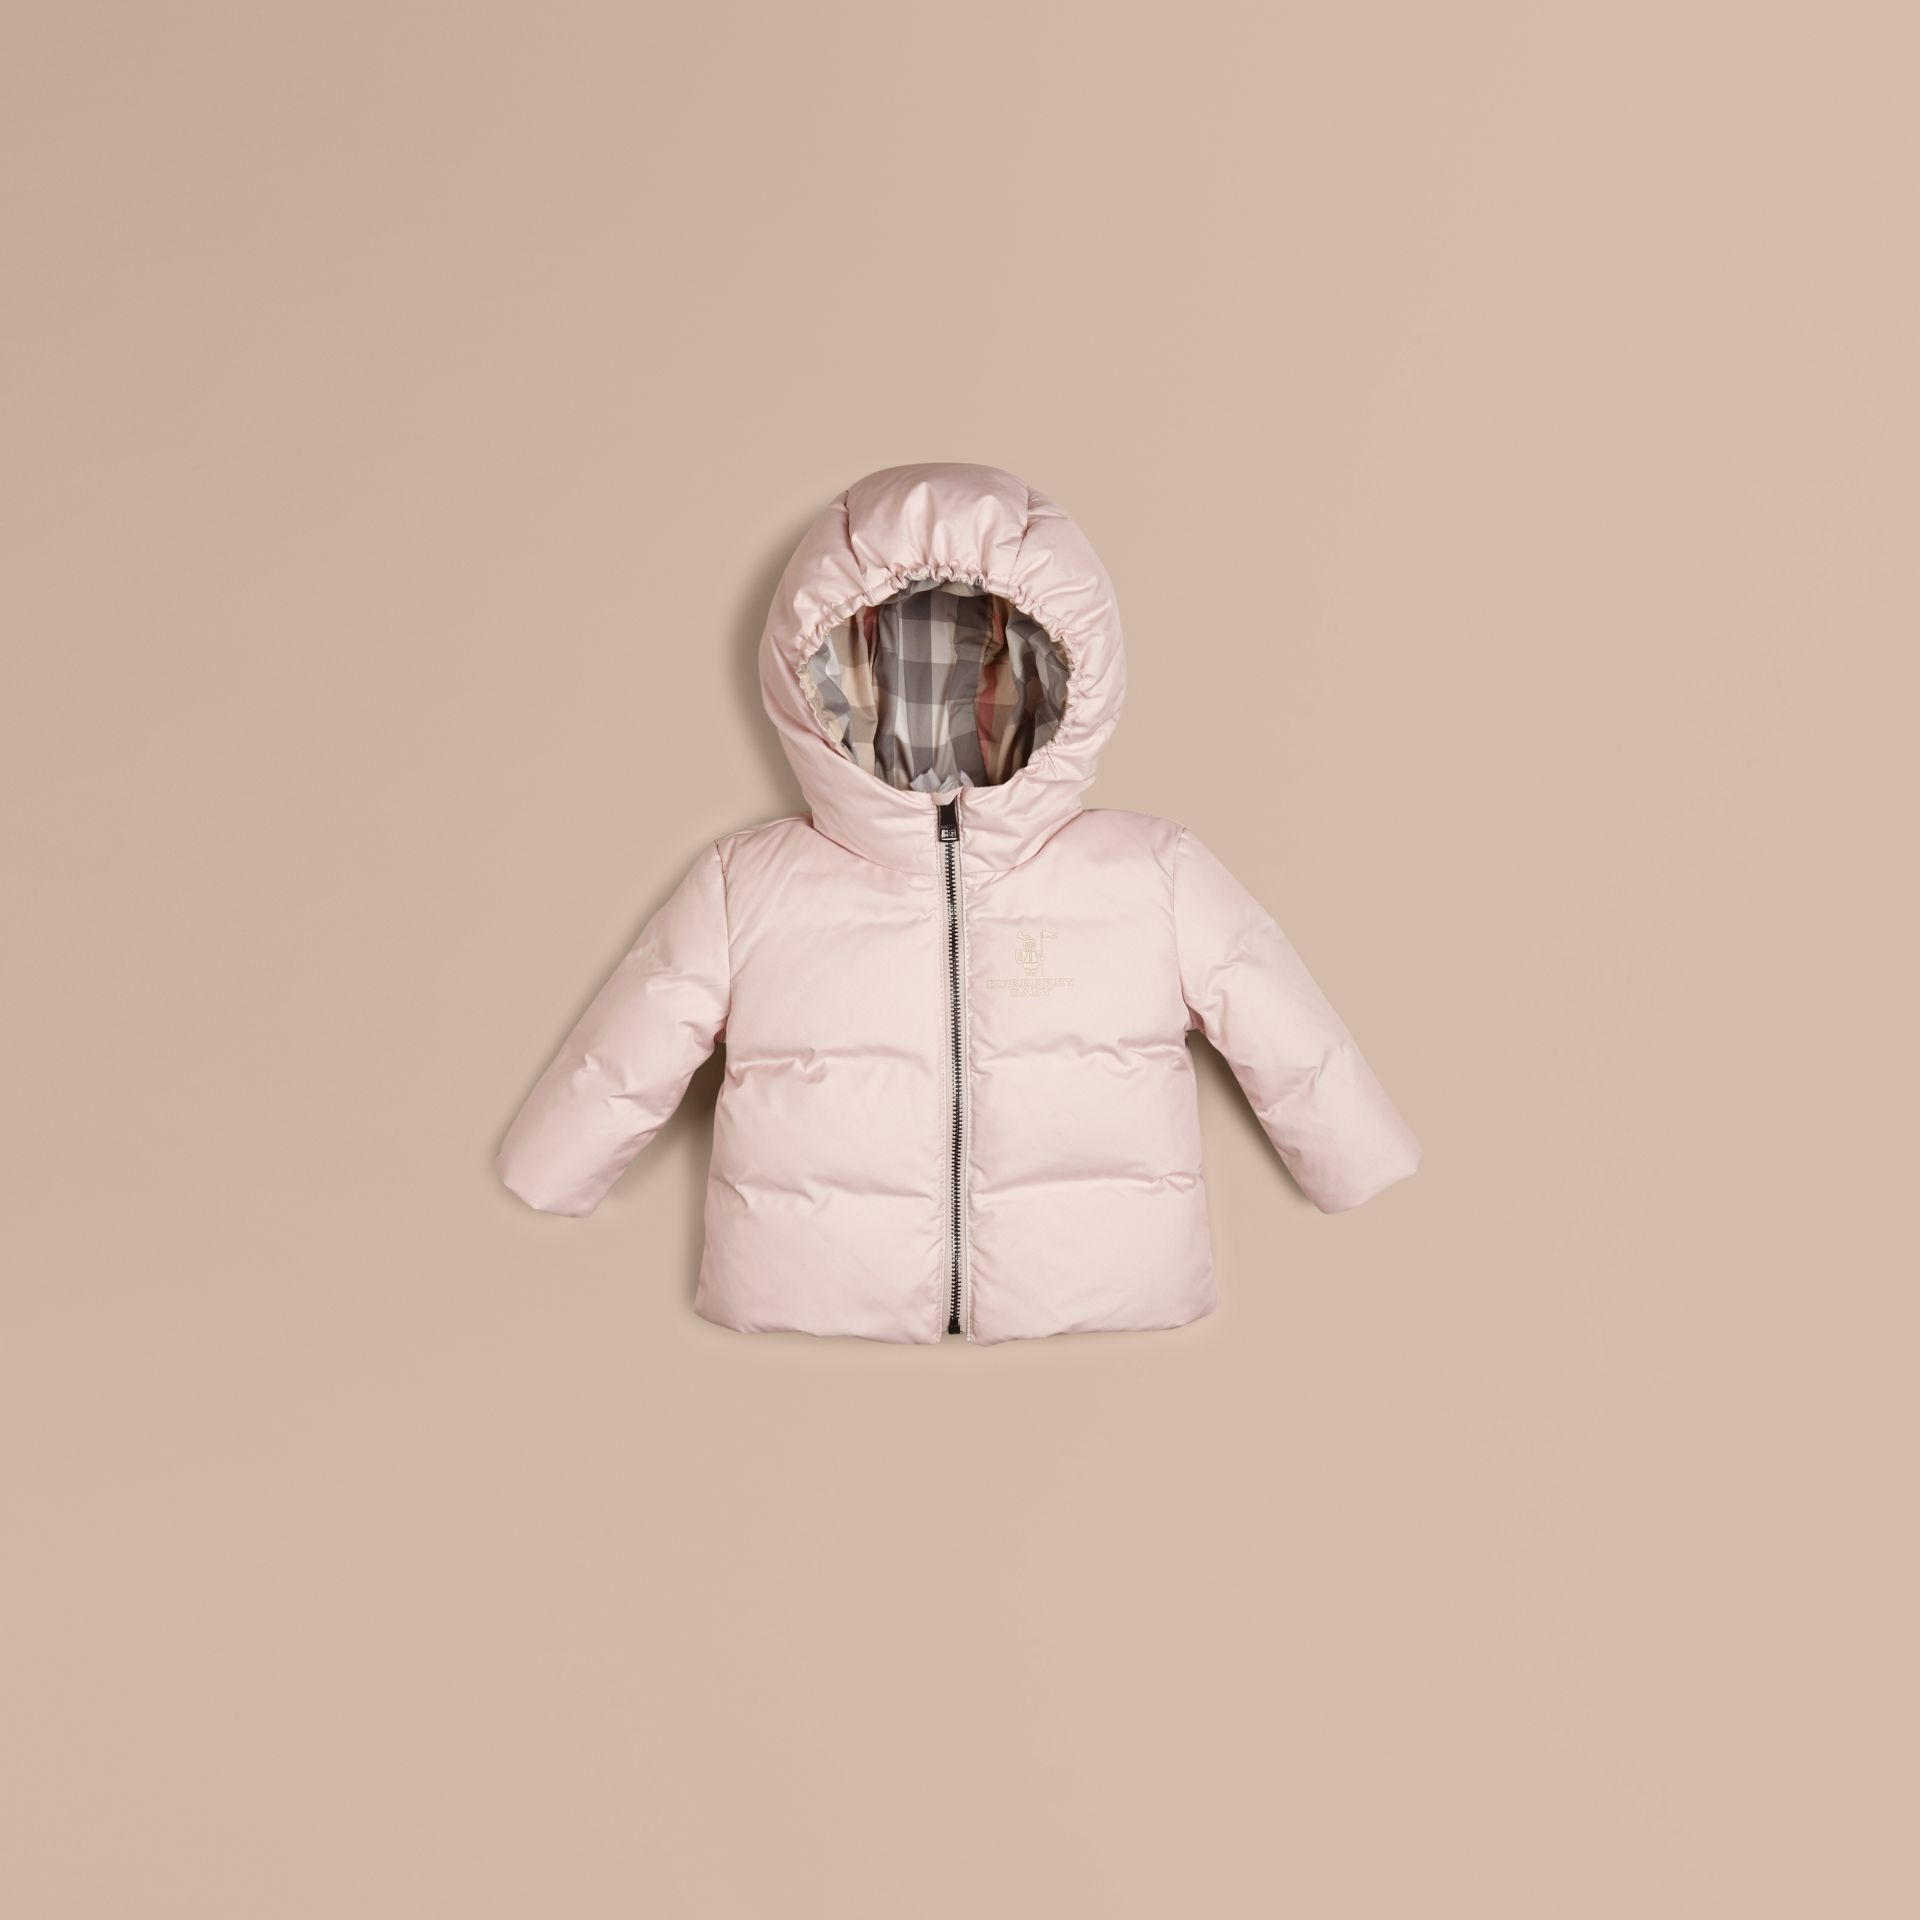 Ice pink Check-Lined Puffer Jacket Ice Pink - gallery image 1